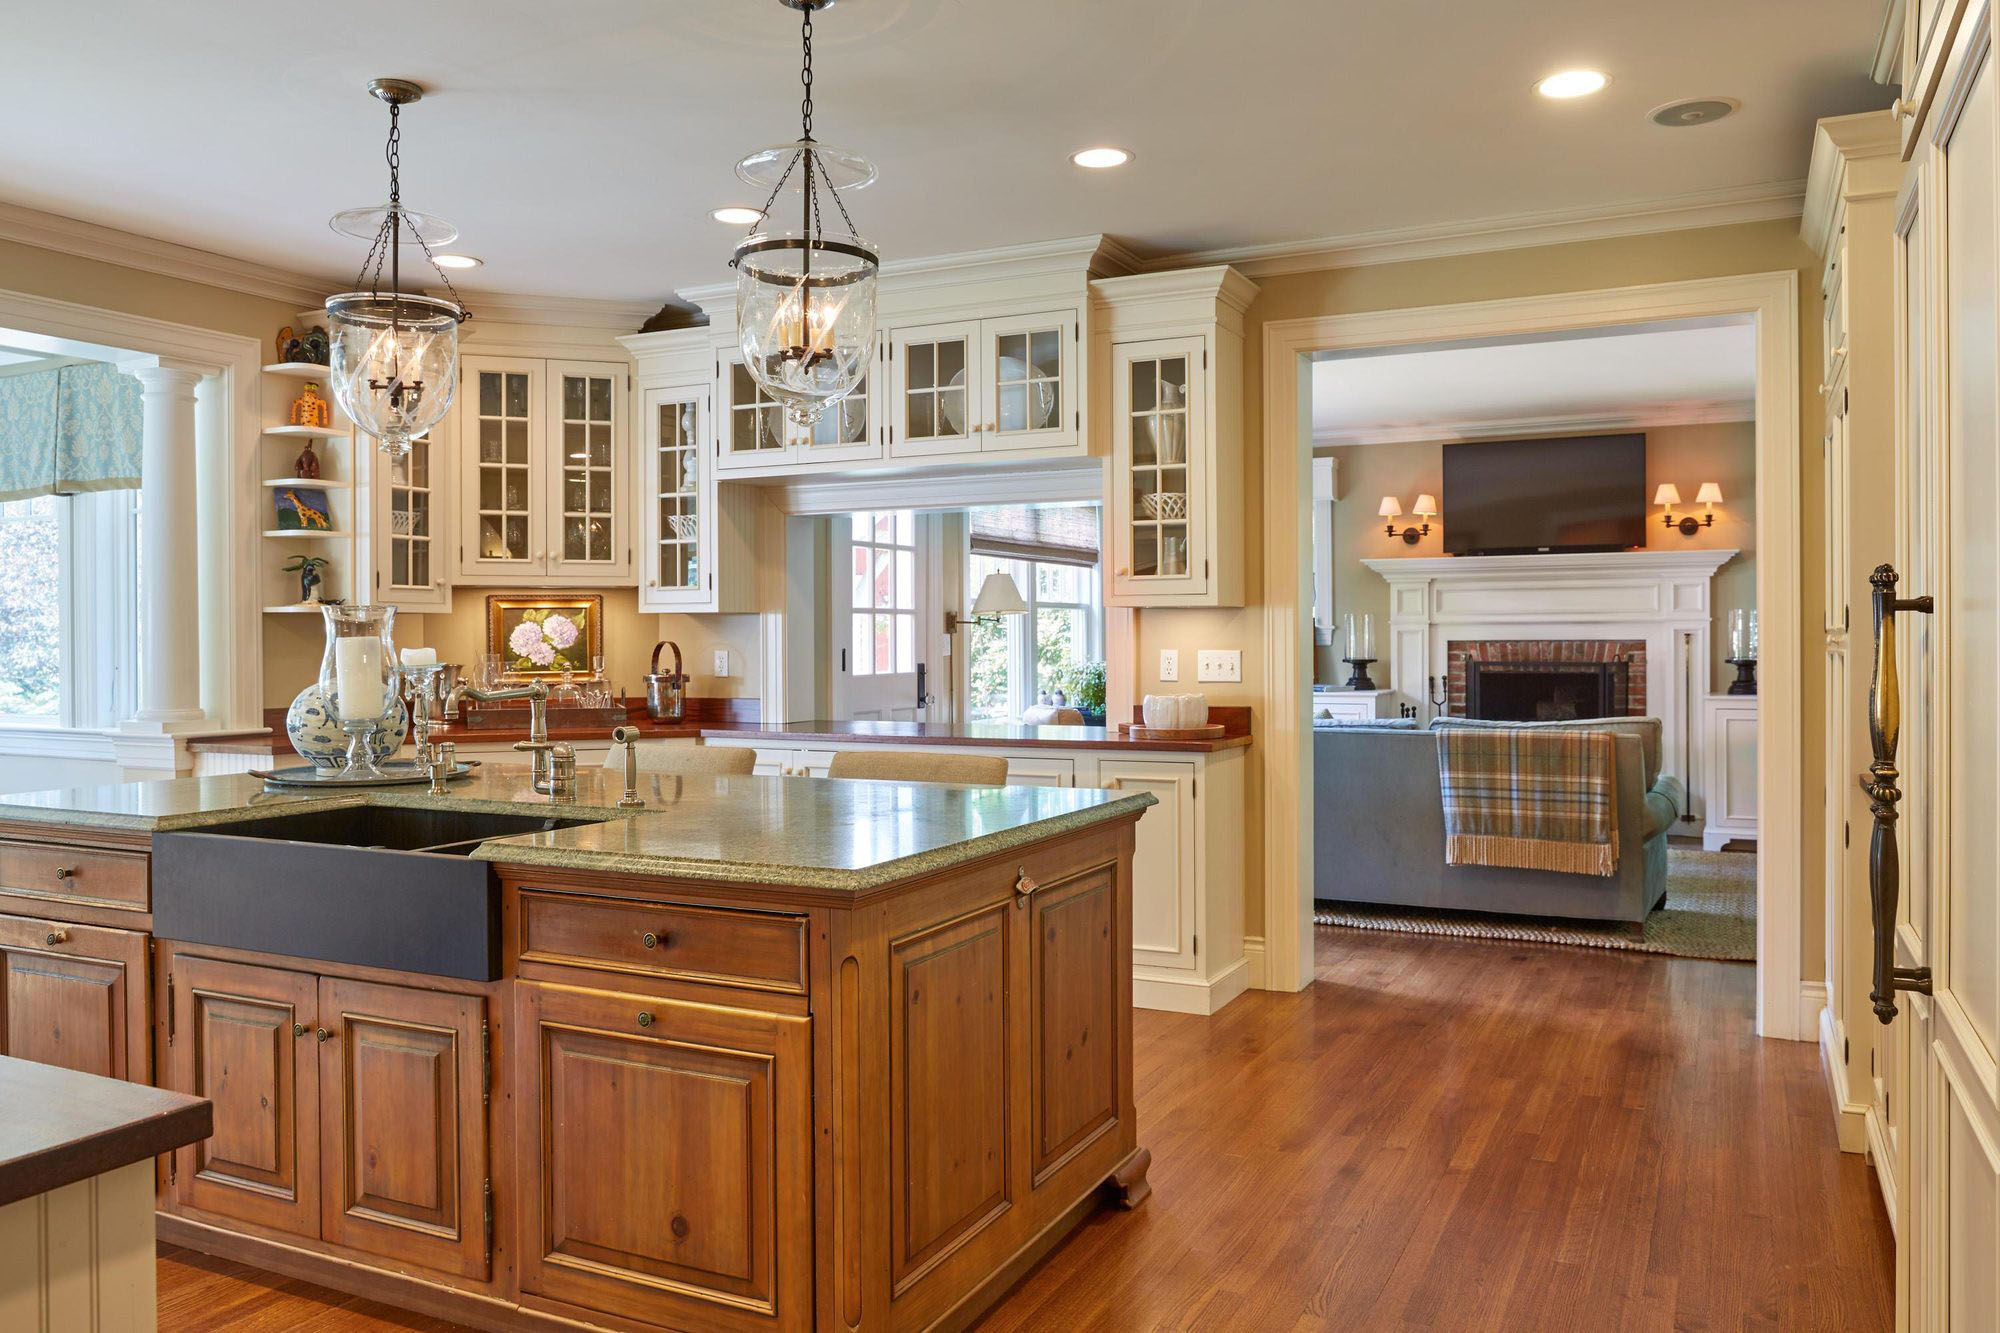 Another view of this beautiful country kitchen with stone farm house sink.